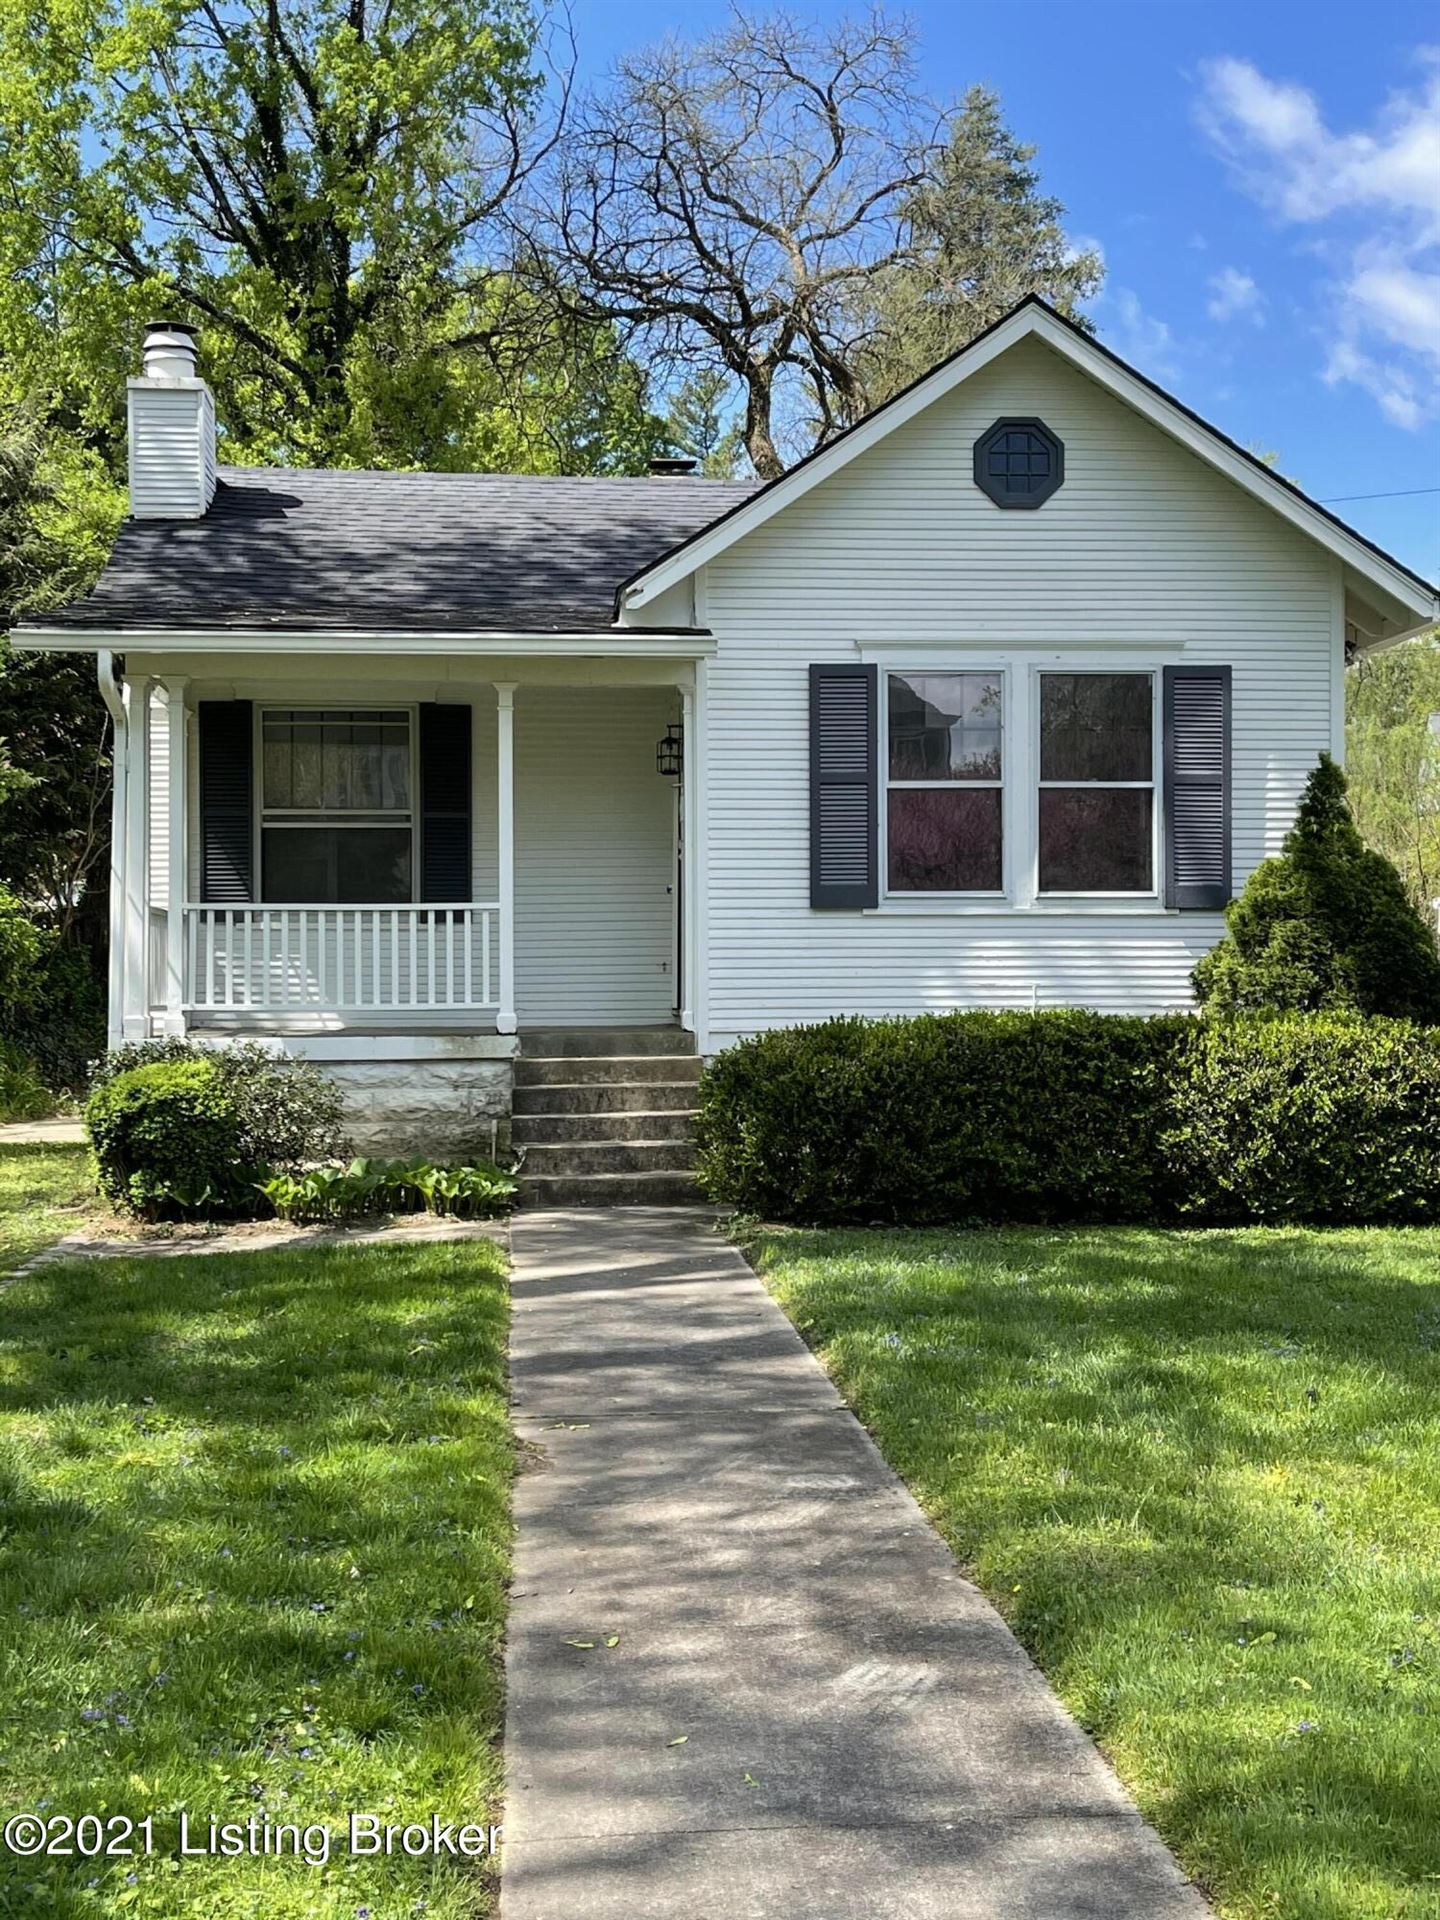 Photo for 142 N Hite Ave, Louisville, KY 40206 (MLS # 1585146)